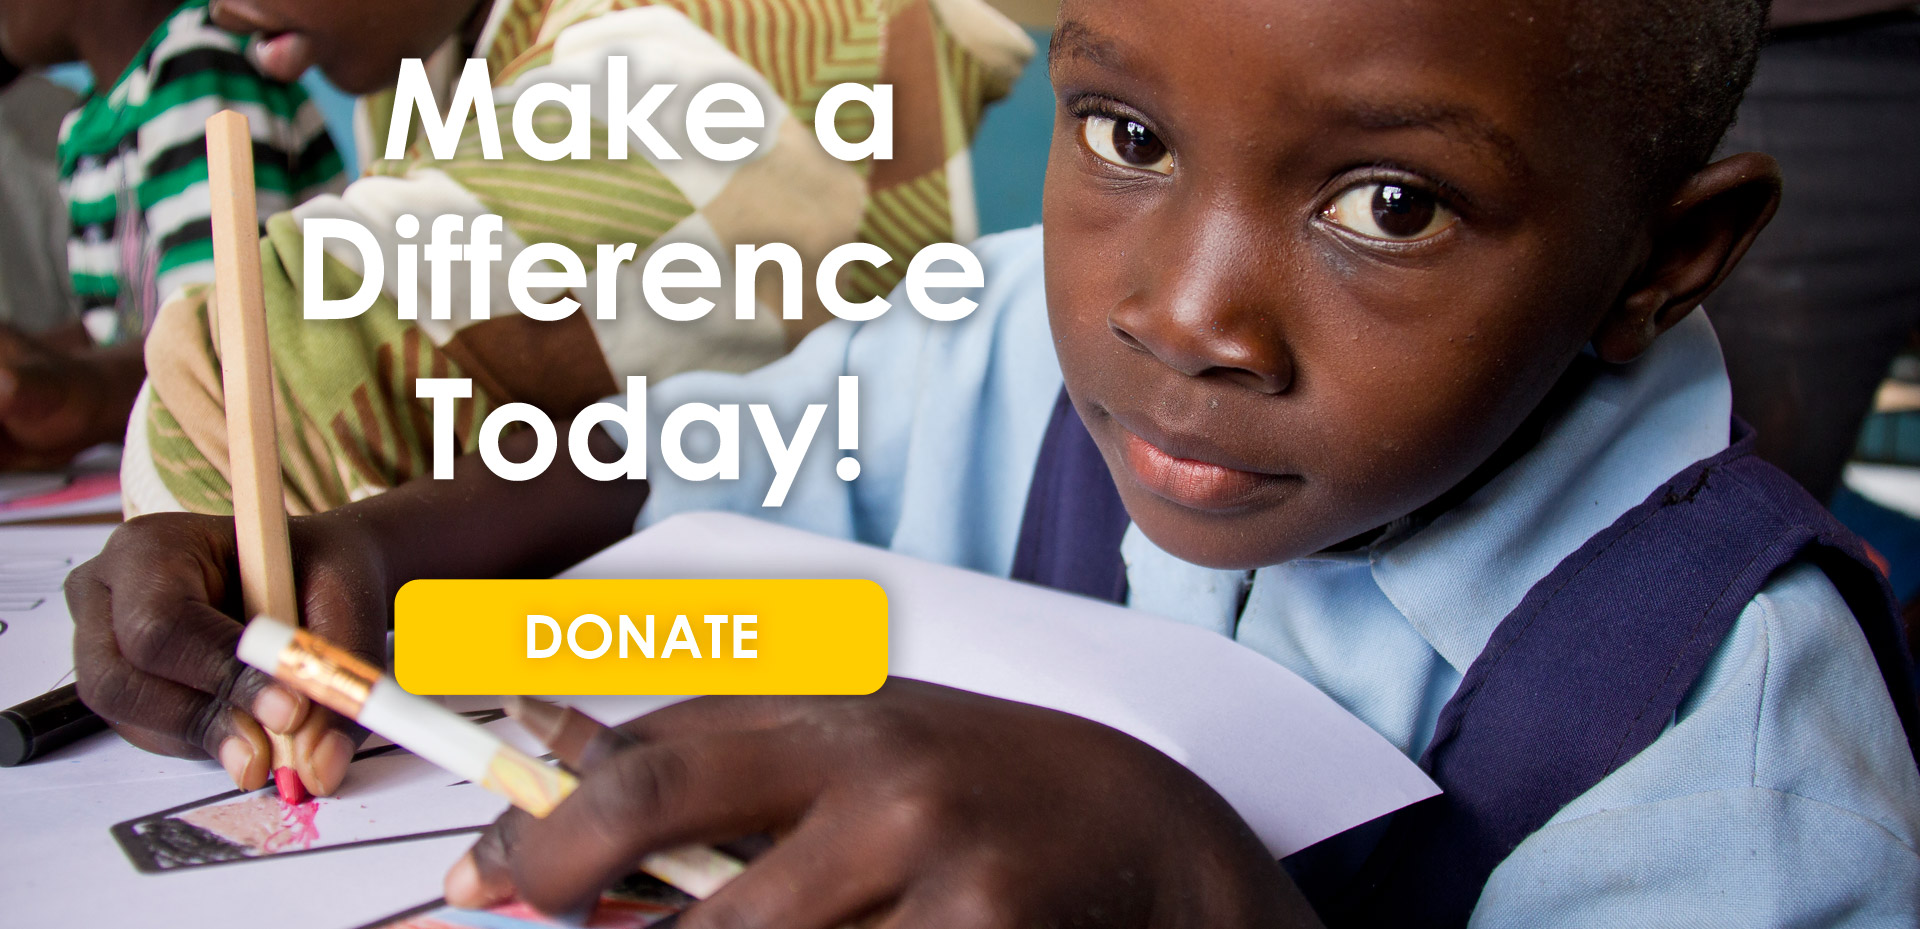 Donate - make a difference today - Raise a Smile